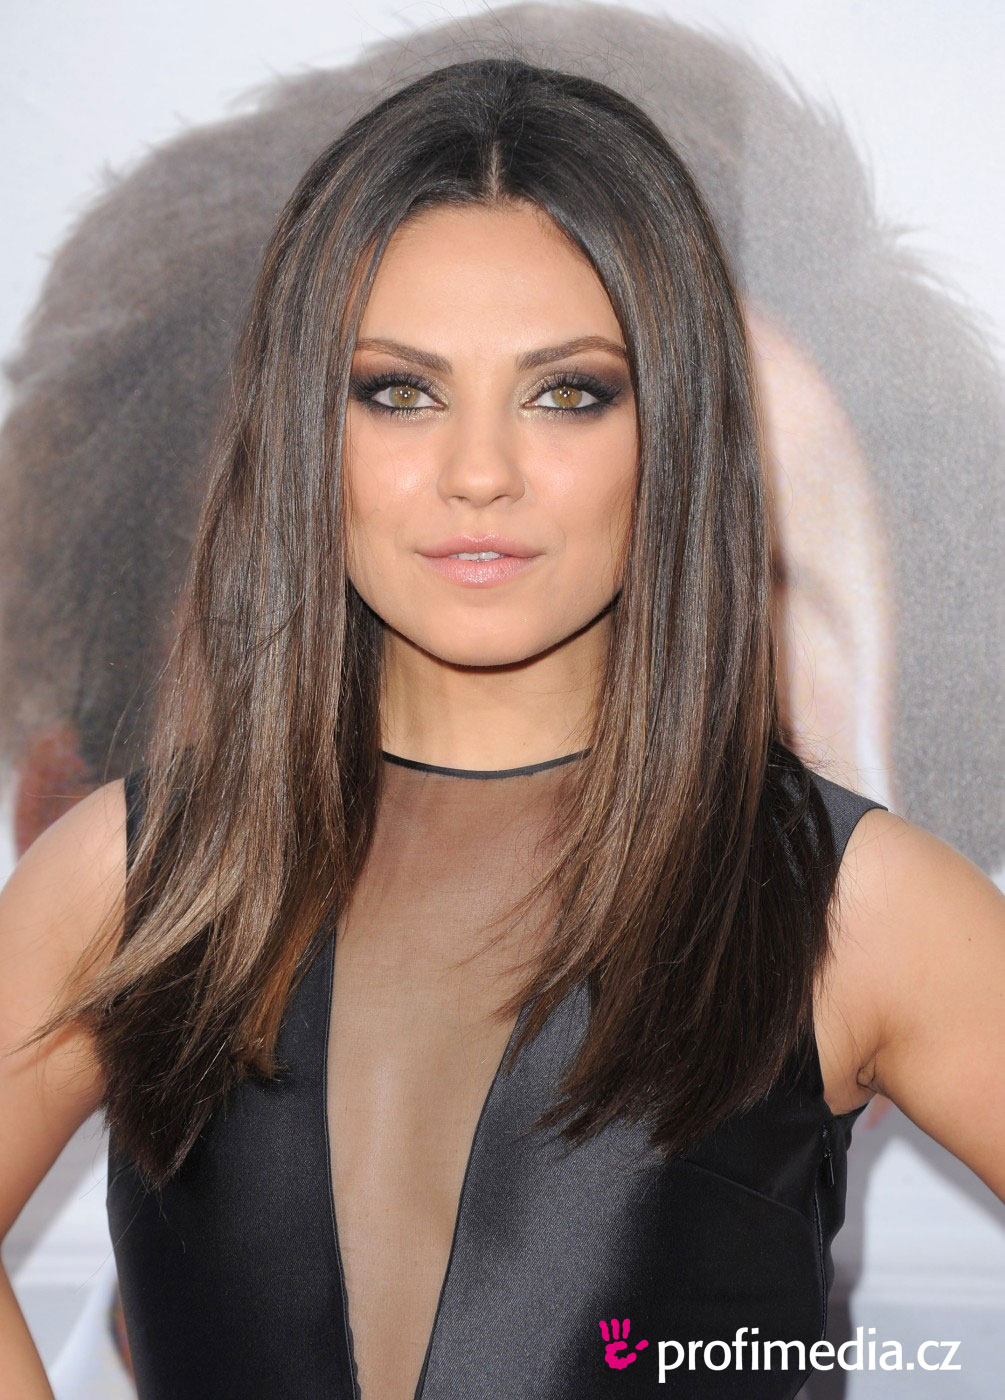 mila kunis frisur zum ausprobieren in efrisuren. Black Bedroom Furniture Sets. Home Design Ideas